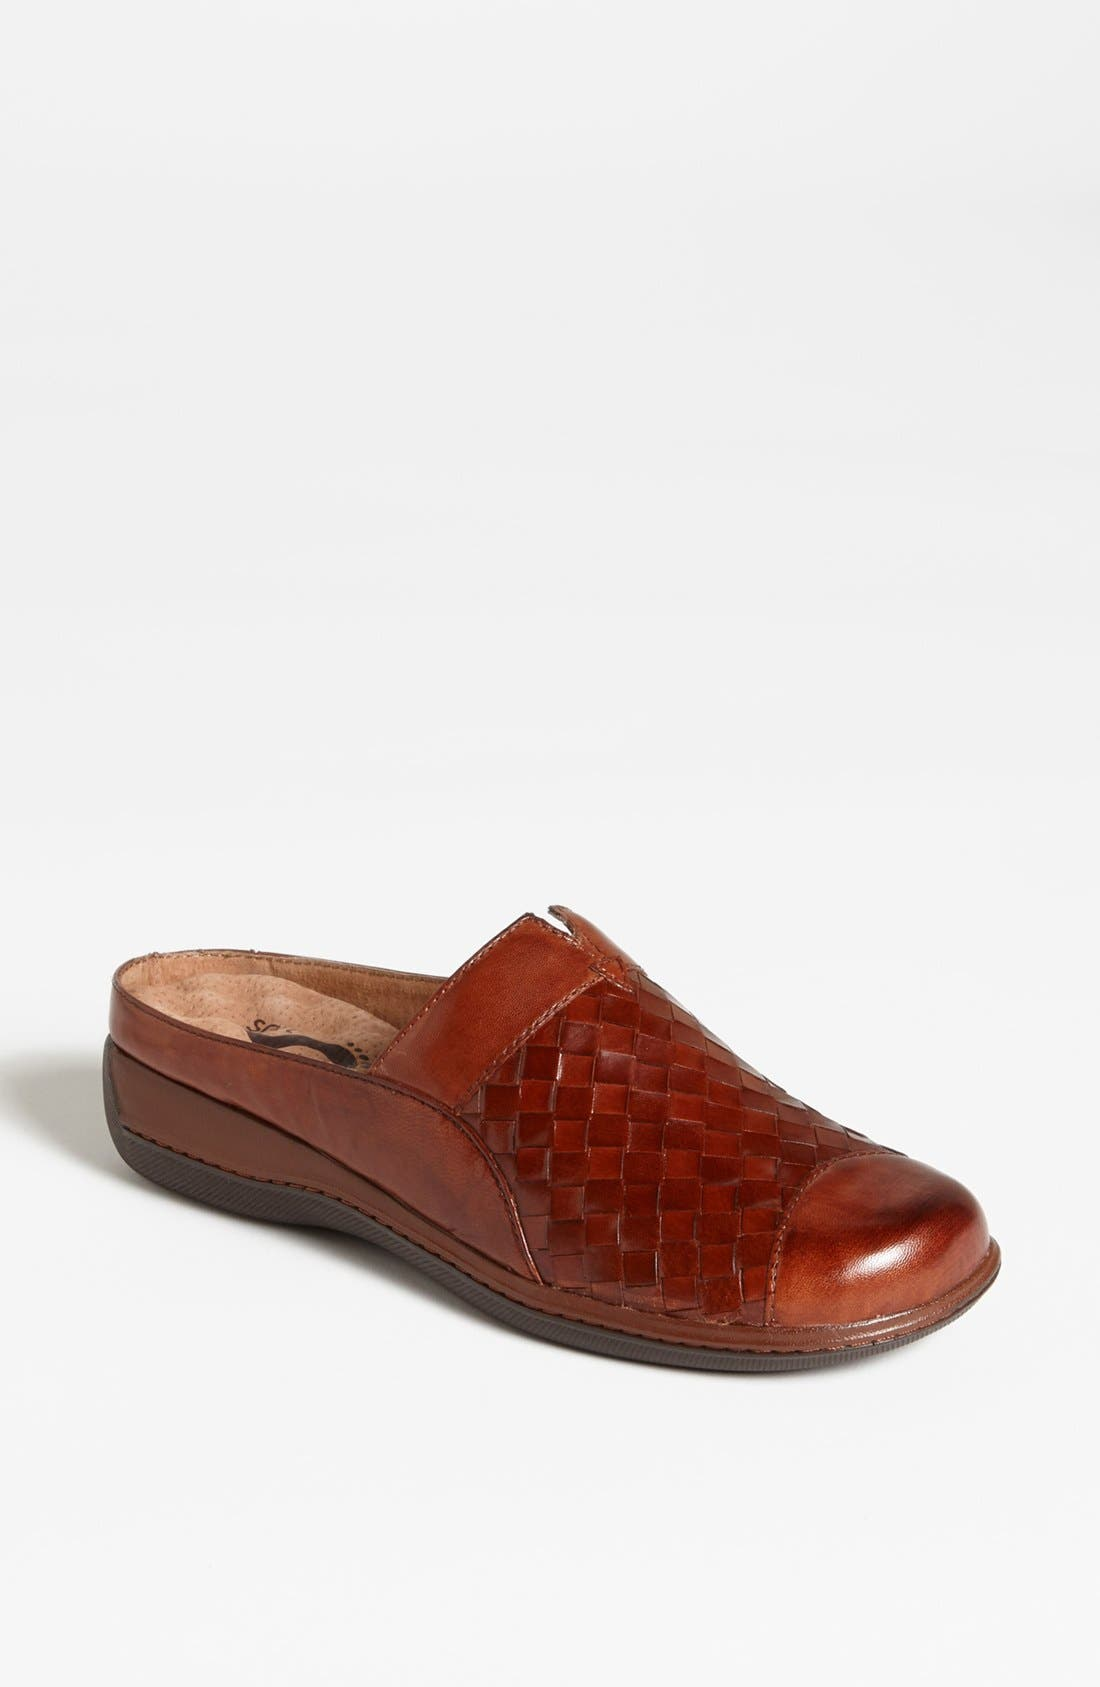 Slip into a burnished leather clog with a woven, hand-finished upper for the perfect pairing of style and comfort. SoftWalk\\\'s patented eggcrate footbed keeps your heels happy, while a thick wedge adds a smidge of stature. Style Name: Softwalk \\\'san Marcos\\\' Clog. Style Number: 901288. Available in stores.